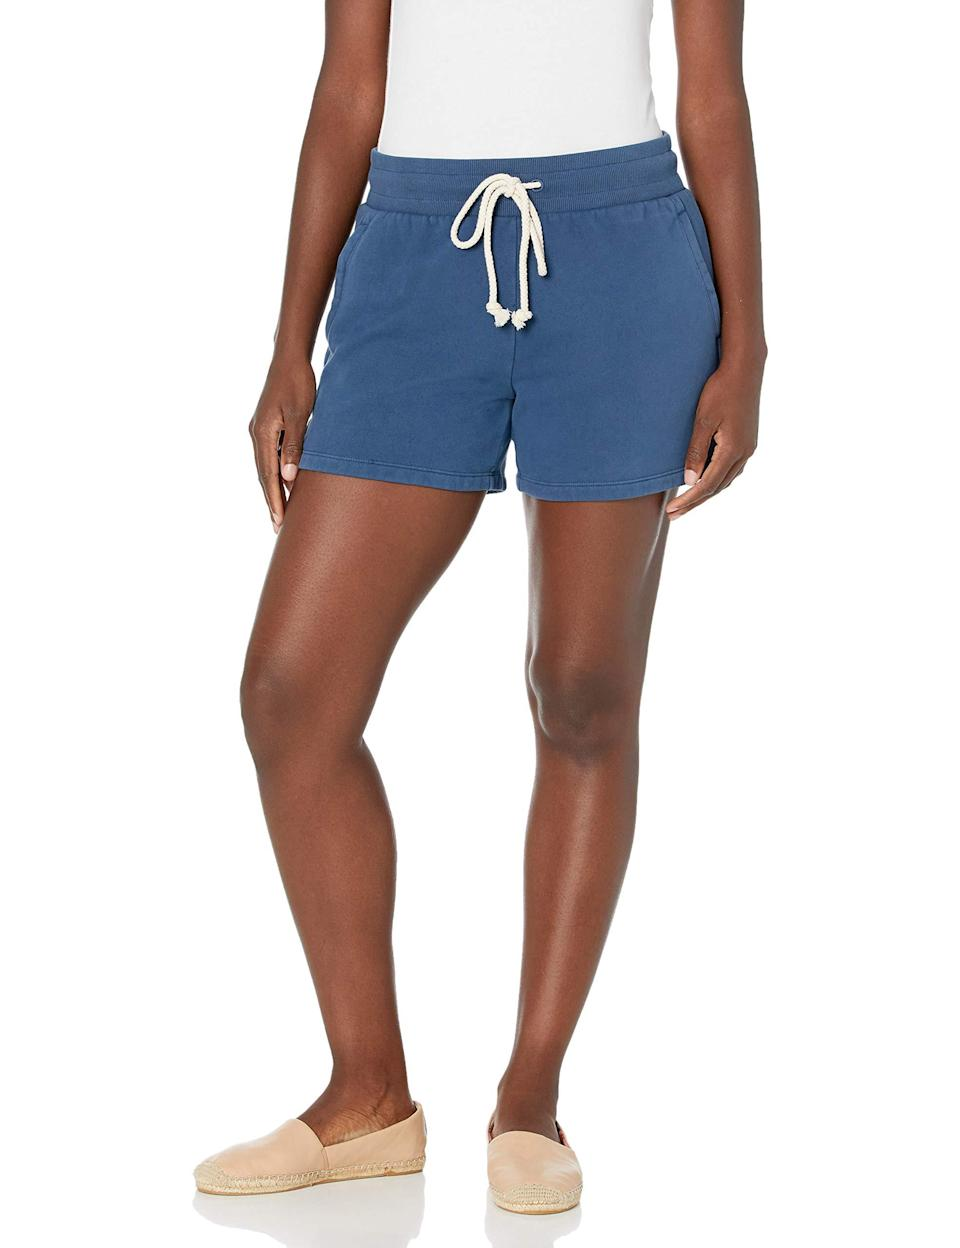 """<h2>Goodthreads</h2><br><br><strong>Goodthreads</strong> Heritage Fleece Drawstring Shorts, $, available at <a href=""""https://amzn.to/3r2zkPA"""" rel=""""nofollow noopener"""" target=""""_blank"""" data-ylk=""""slk:Amazon"""" class=""""link rapid-noclick-resp"""">Amazon</a>"""